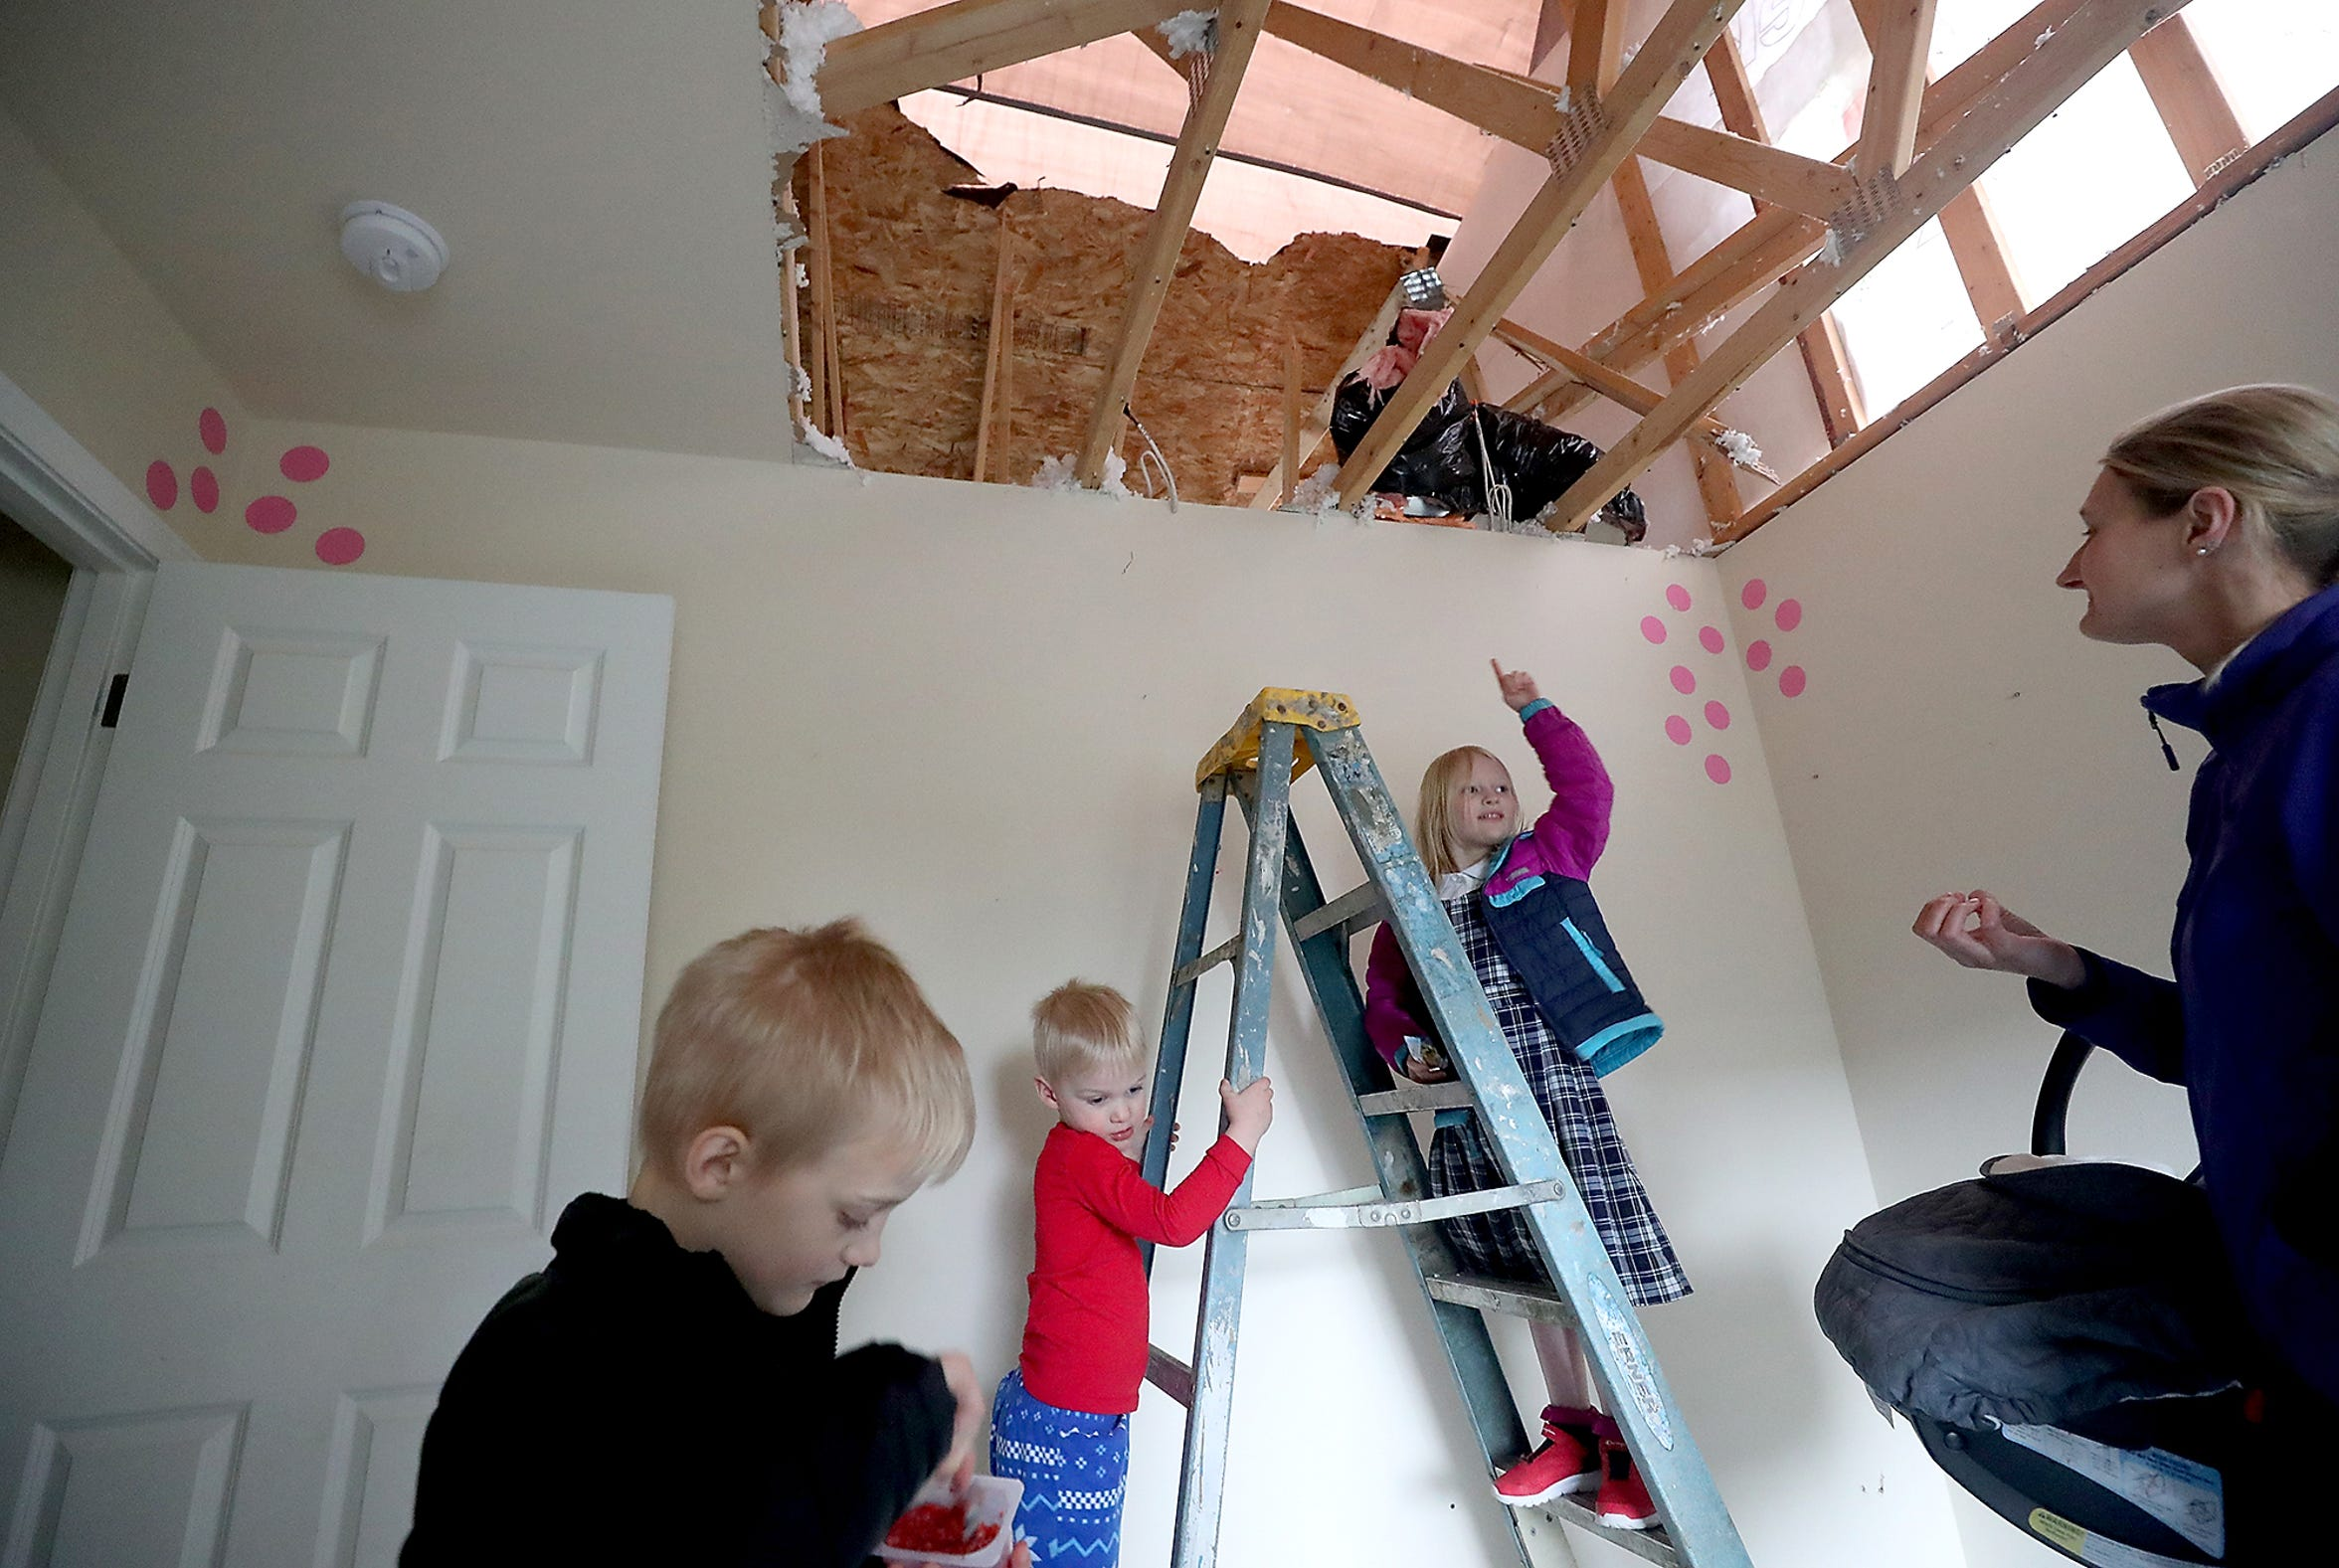 Julia Roscoe, 5, points to the missing ceiling in her bedroom while she and brother Benjamin, 3, stand on the bottom rungs of a ladder. Their mother Liz, right, and brother Matthew, 7, take a look at the repairs being done to their tornado-damaged home on Kelby Circle in Port Orchard on Monday.  Monday marks the three-month anniversary of the EF-2 tornado that touched down in Port Orchard on Dec. 18, 2018.